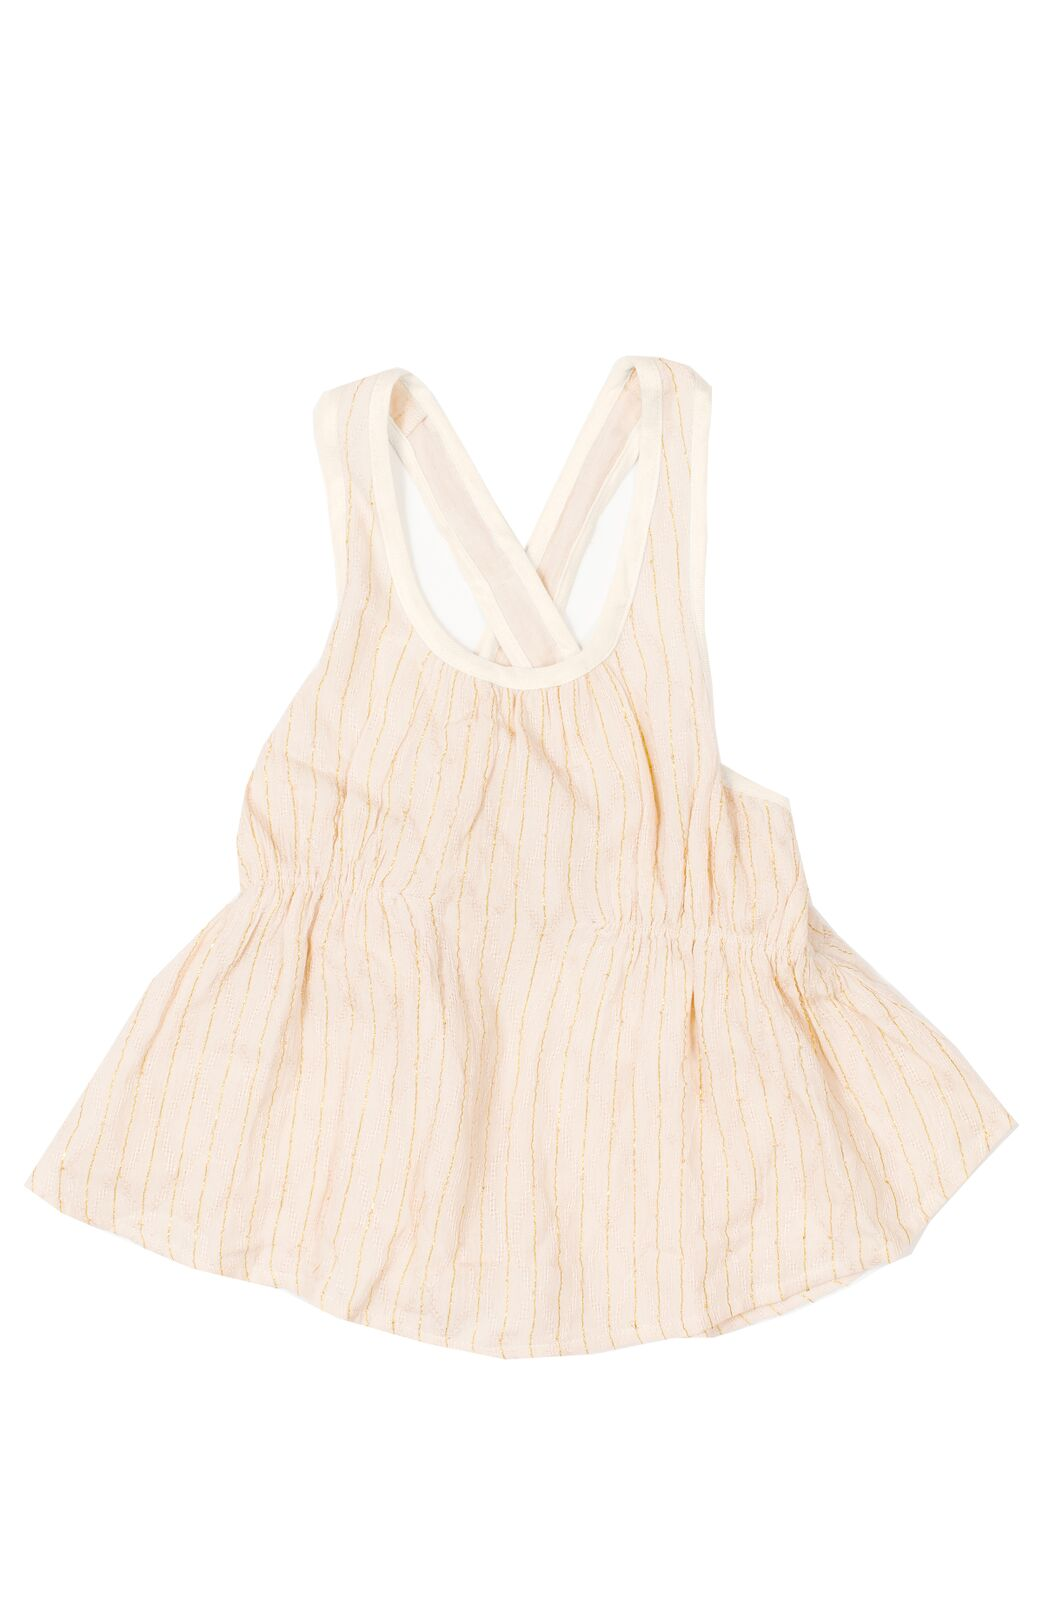 Bowie James Aquarius Tank Top - Cream